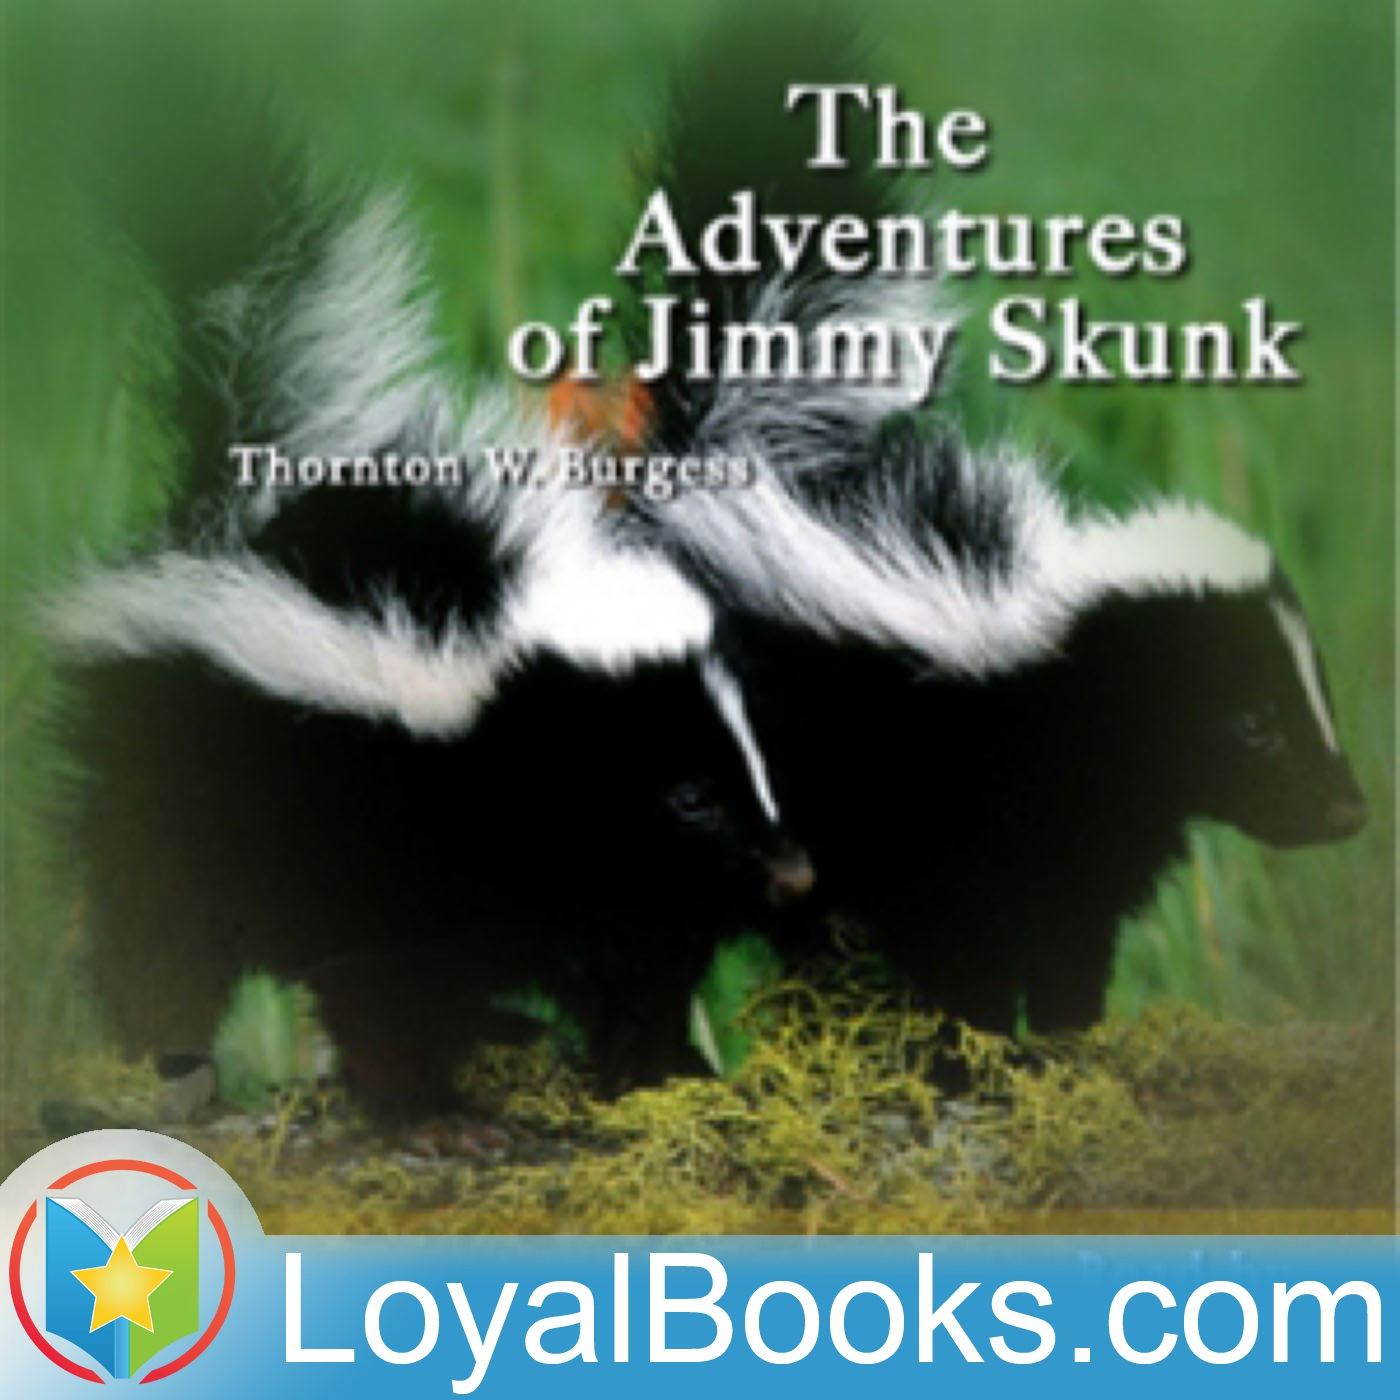 <![CDATA[The Adventures of Jimmy Skunk by Thornton W. Burgess]]>